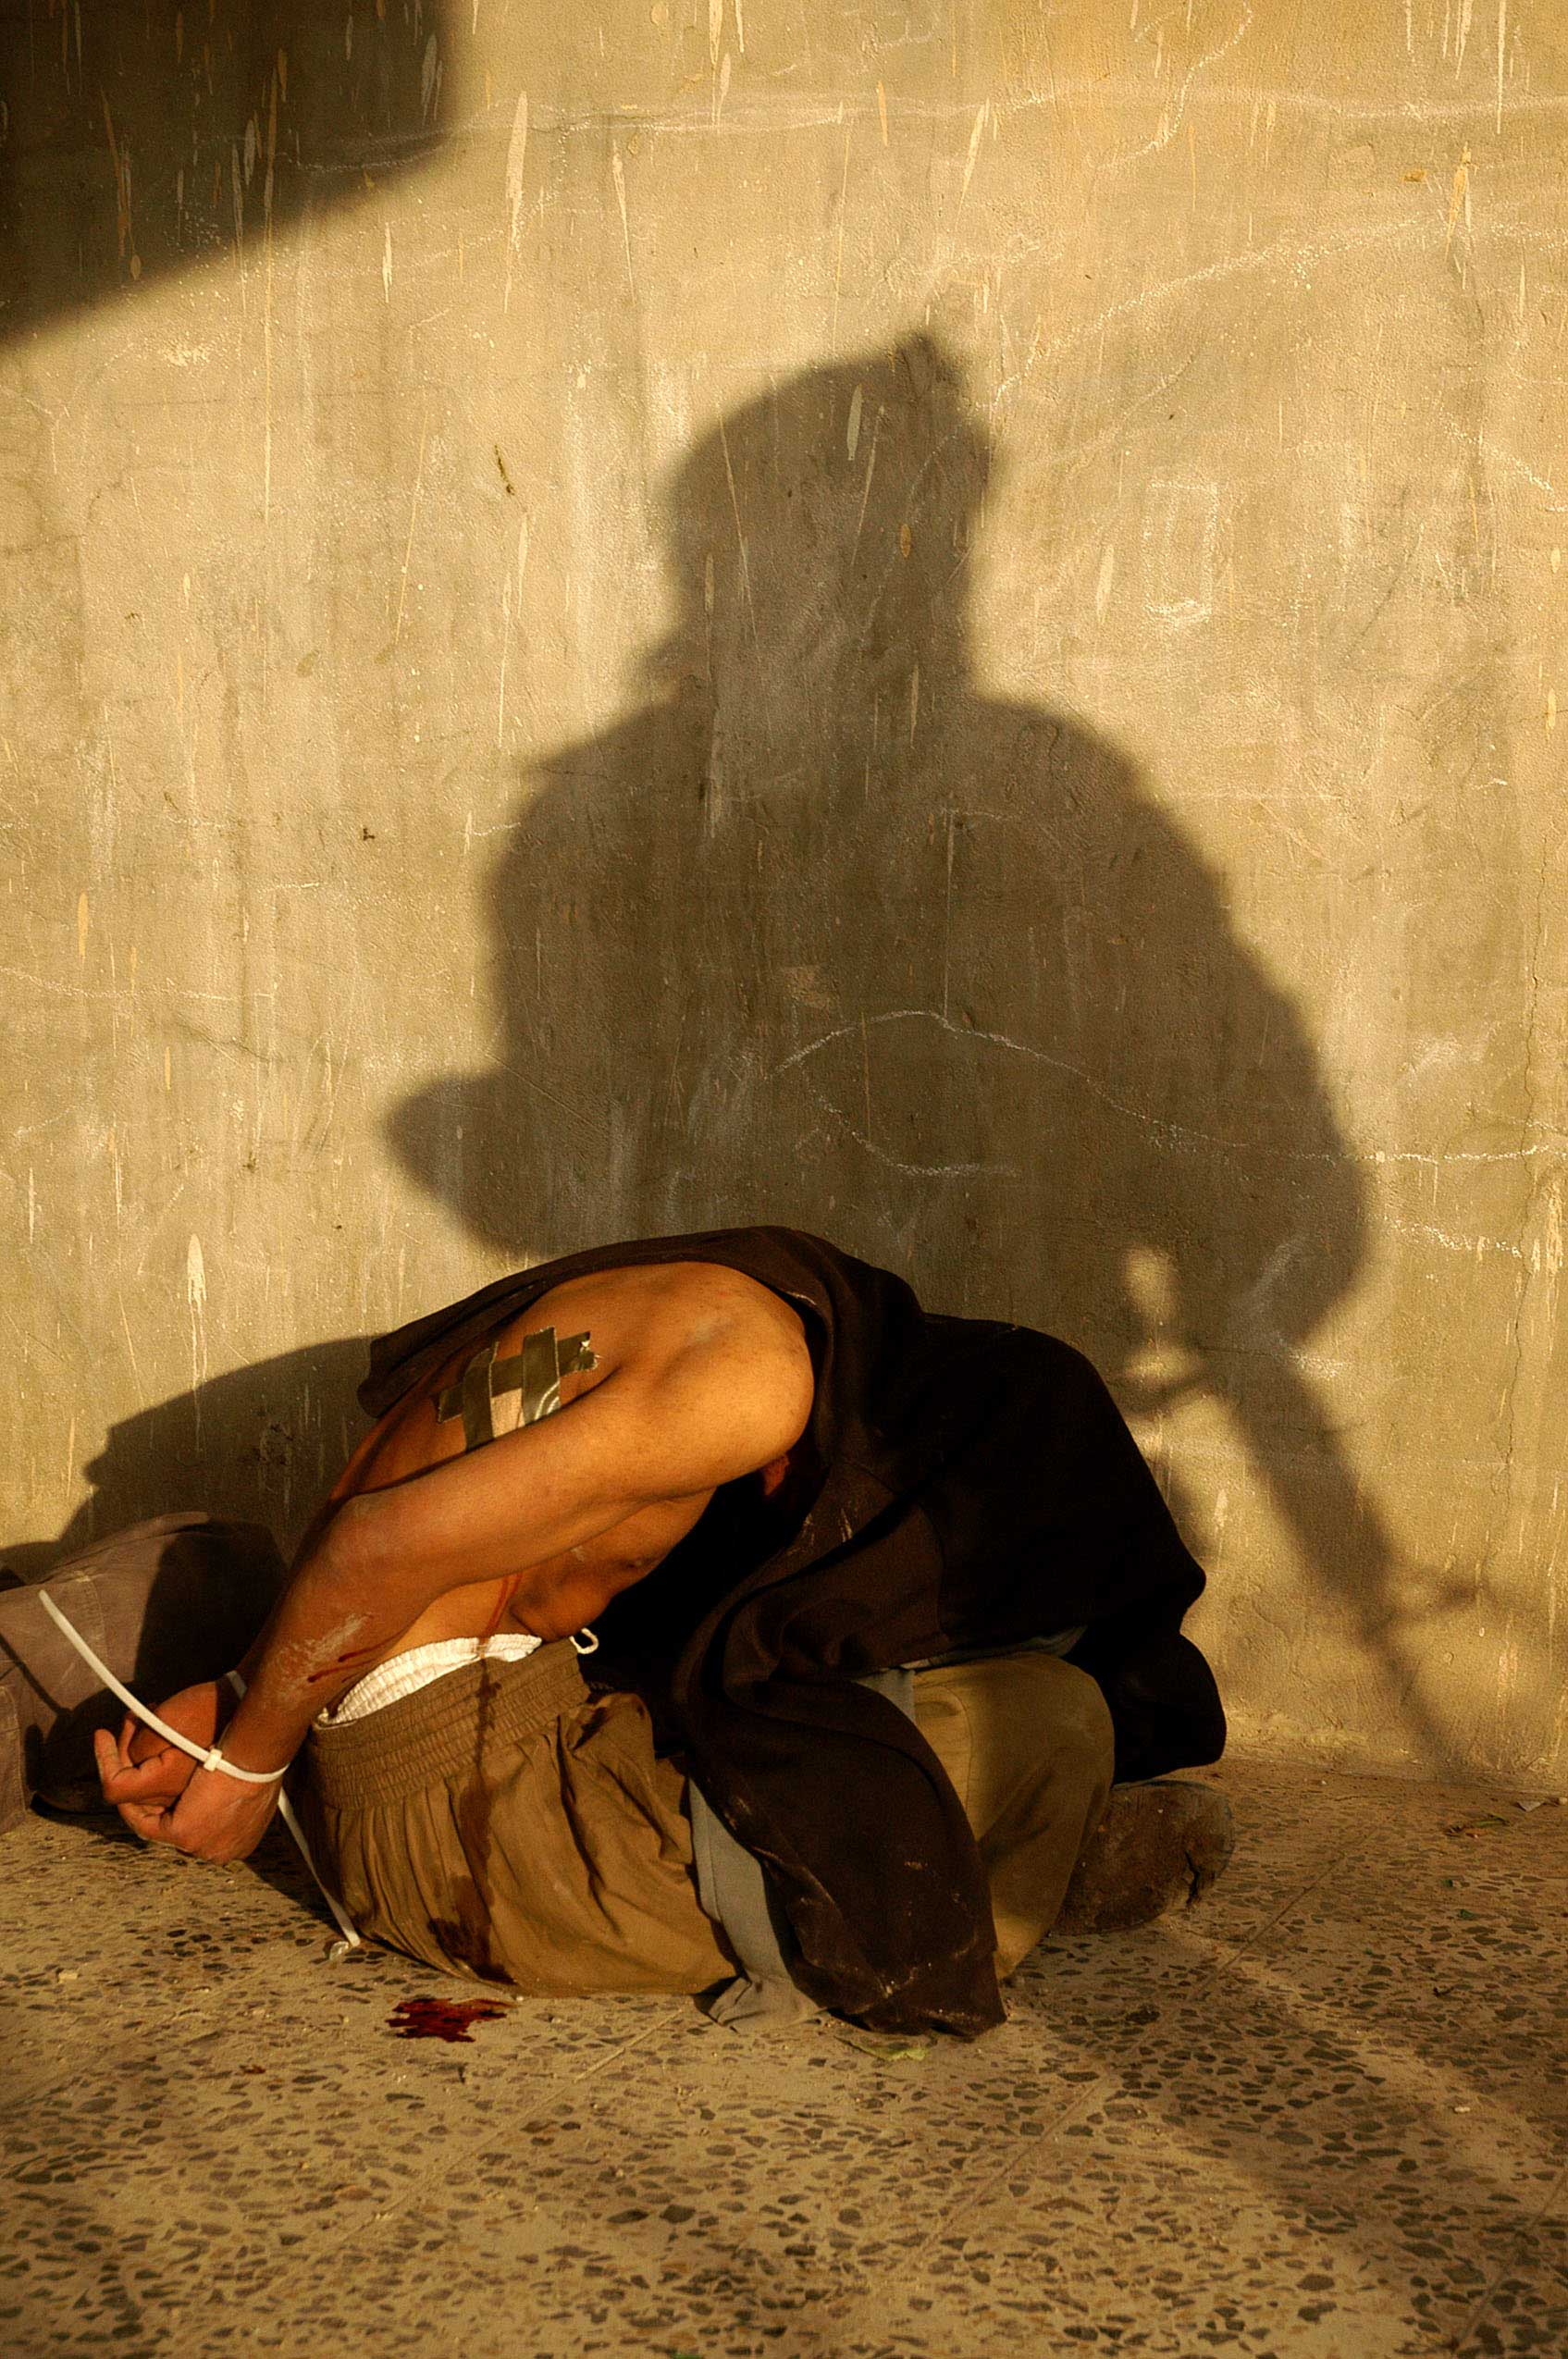 <b>Ashley Gilbertson, Nov. 13, 2004                                   </b>                                   Of all the images that I made in the six years I spent working in Iraq, this is the photograph that best represents my experience of war. The anonymous nature of the picture speaks to how we fight war. The shadow of the Marine on the wall is merely a symbol: of American force and of policies made in Washington and carried out in the Middle East. When insurgents kill U.S. forces, they are not trying to murder Demarkus Brown, a young man from a small town whose parents loved him more than anybody else in the world. They were hoping to kill the symbol, to damage American ideals. The insurgent on the ground with his face covered by a sweater is as impersonal as the MarineÕs shadow. When the American military fights their enemy, they become just that: the enemy. Aiming through his rifle's iron sights, a soldier isn't seeing Mohammad Rezzaq, a father with four children waiting at home, he only sees AQI (al Qaeda in Iraq) or a Mahdi army fighter. To personalize killing would make it far more difficult to pull the trigger and perhaps impossible to wage war on a large scale. Rendering 'The Other' anonymous is how we bring ourselves to fight.